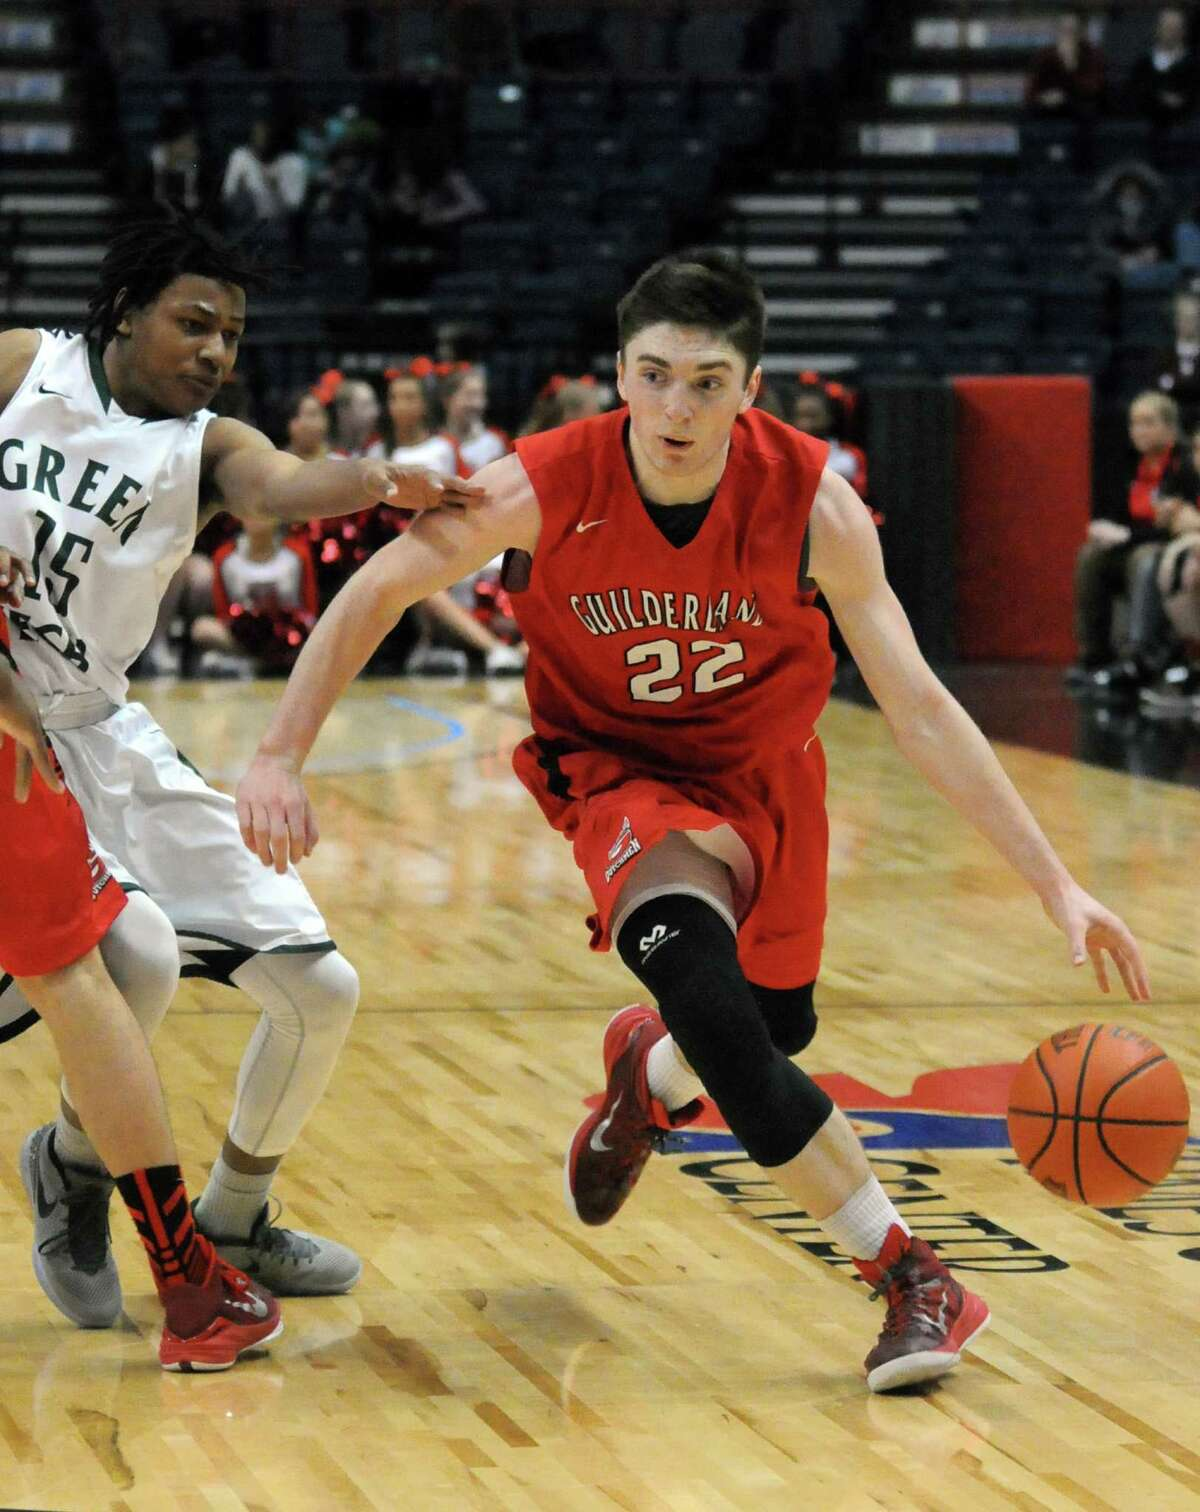 Guilderland's Andrew Platek drives to the basket during a Class AA sectional game in 2015. He starred at Guilderland before going to Northfield Mount Hermon for a year.